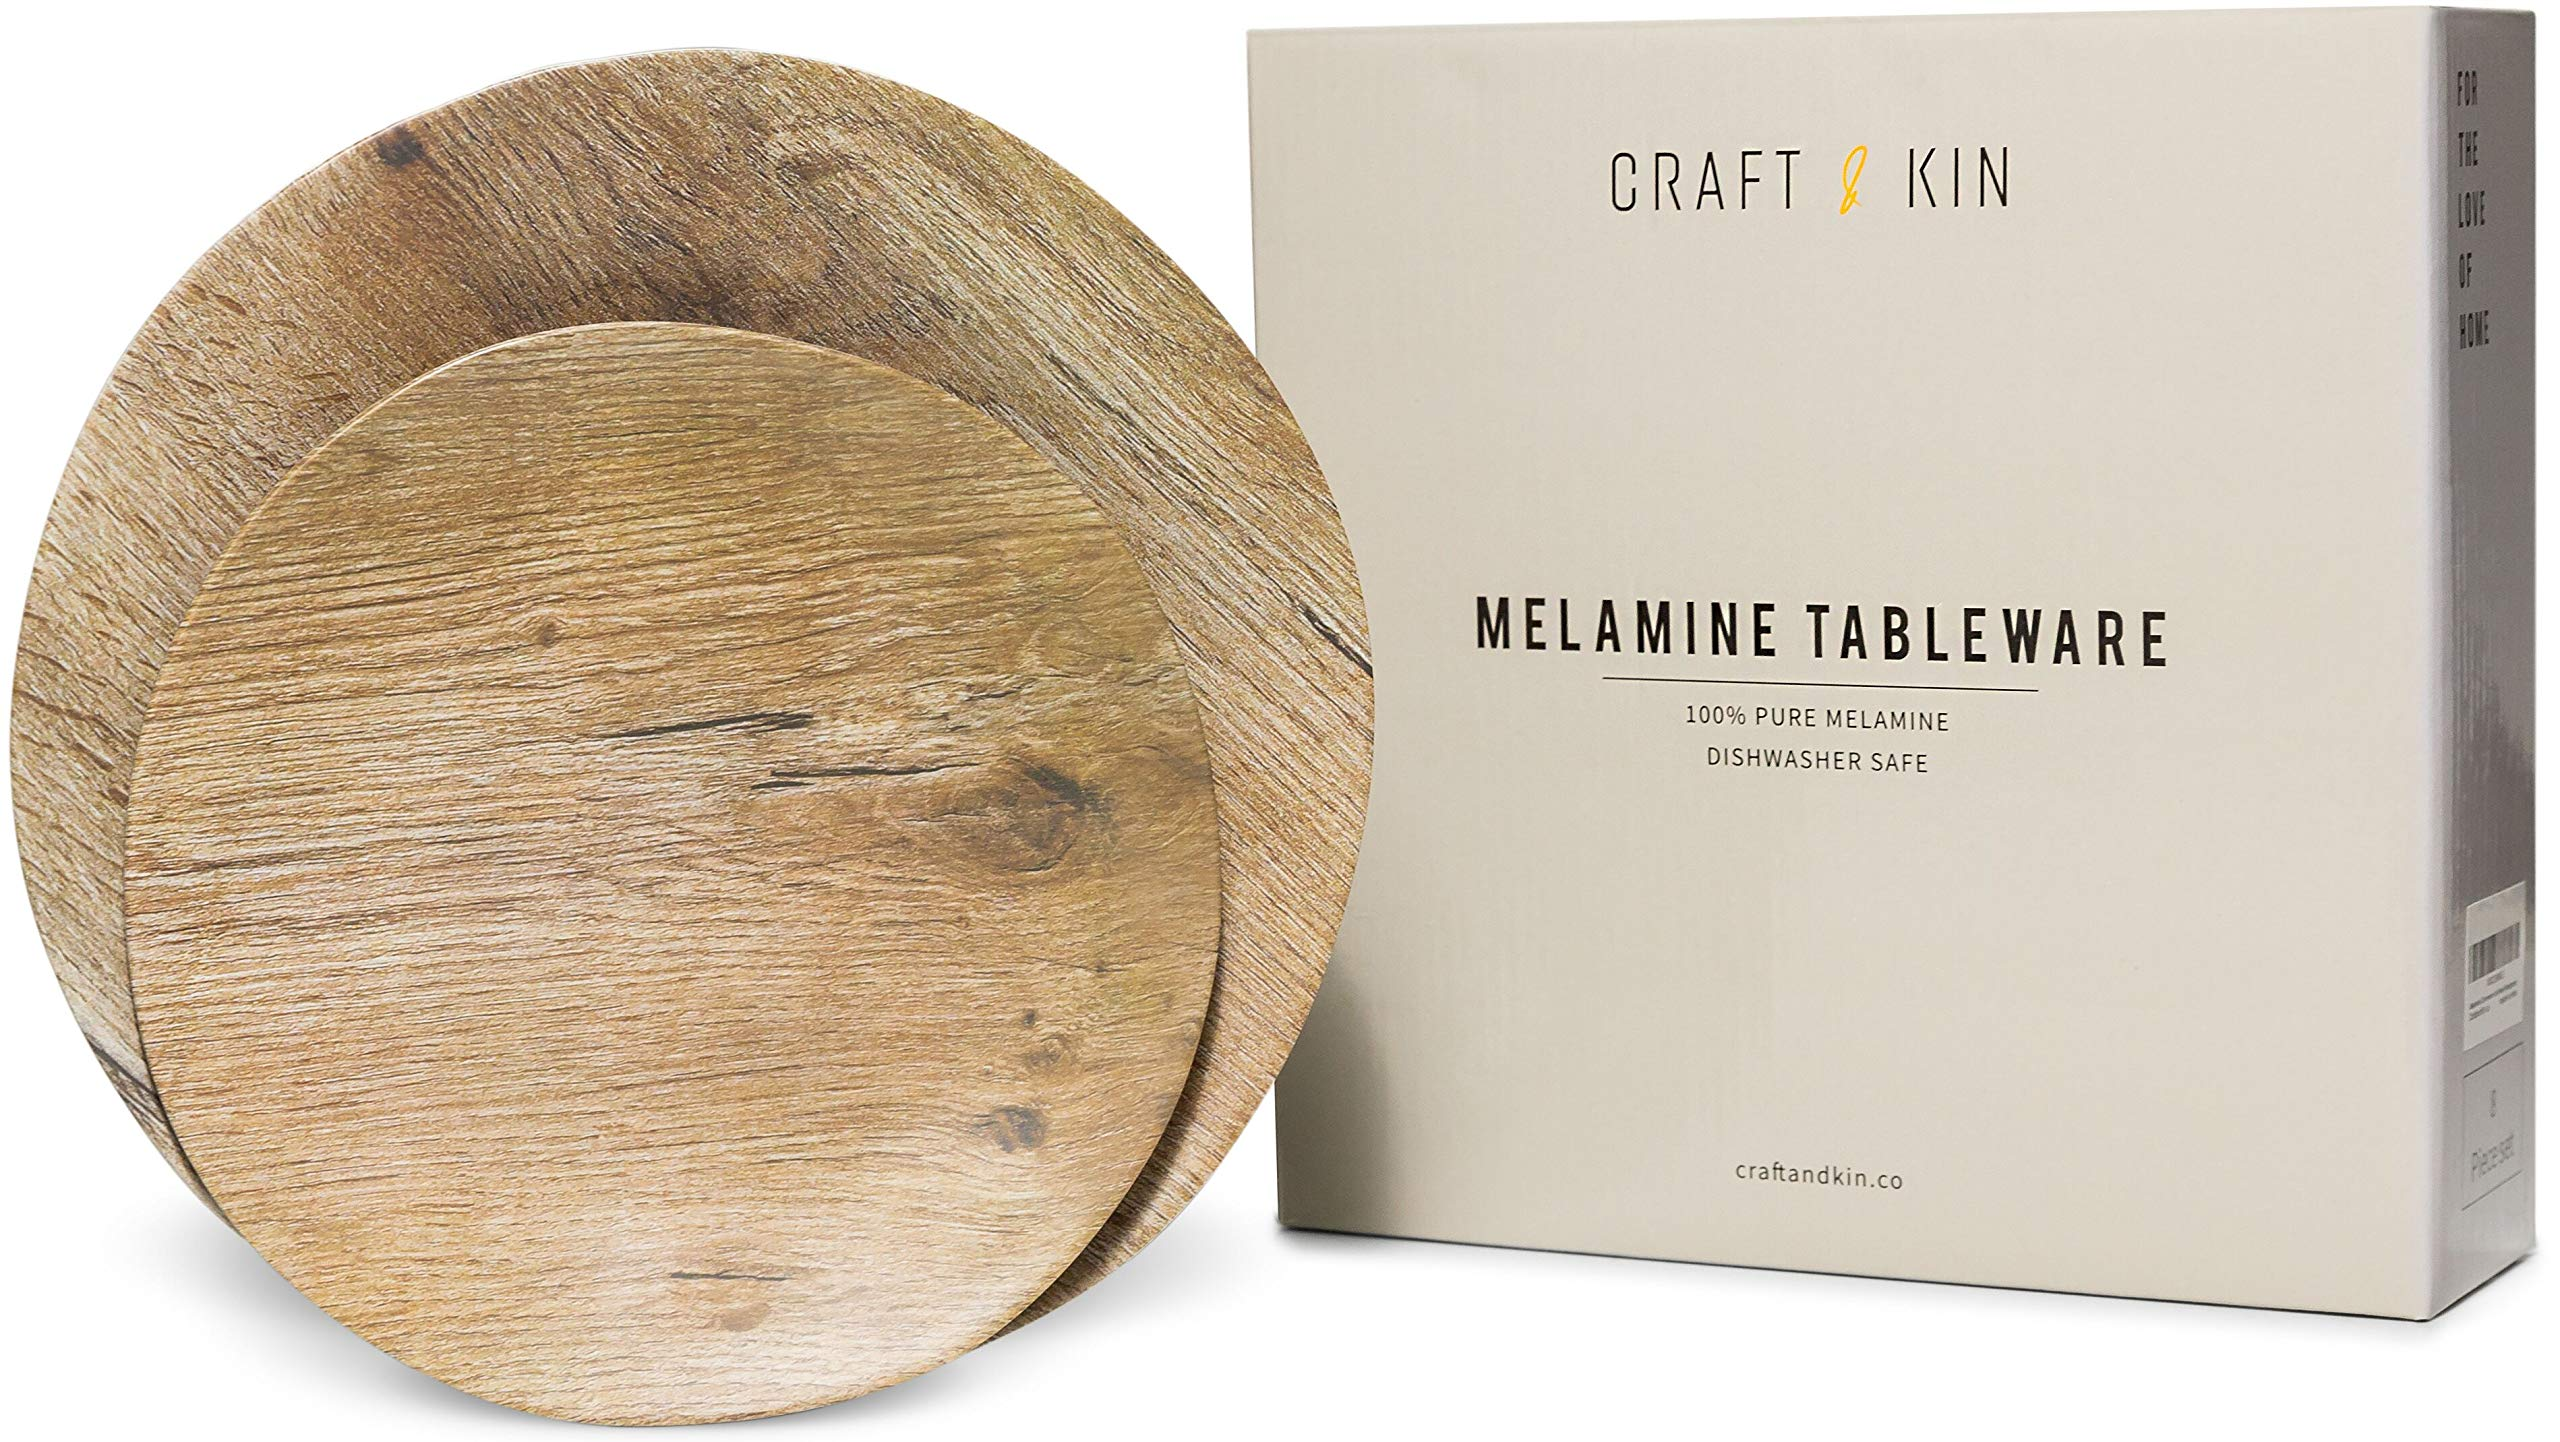 Melamine Dinnerware Set - Melamine Plates 8 Pcs Outdoor Plates Summer Plates and Bowls Sets Dinnerware Unbreakable Plates Ideal Camping Dish Set Dinnerware Set for 4 Dishwasher Safe Plates (Woodgrain) by Craft & Kin (Image #1)